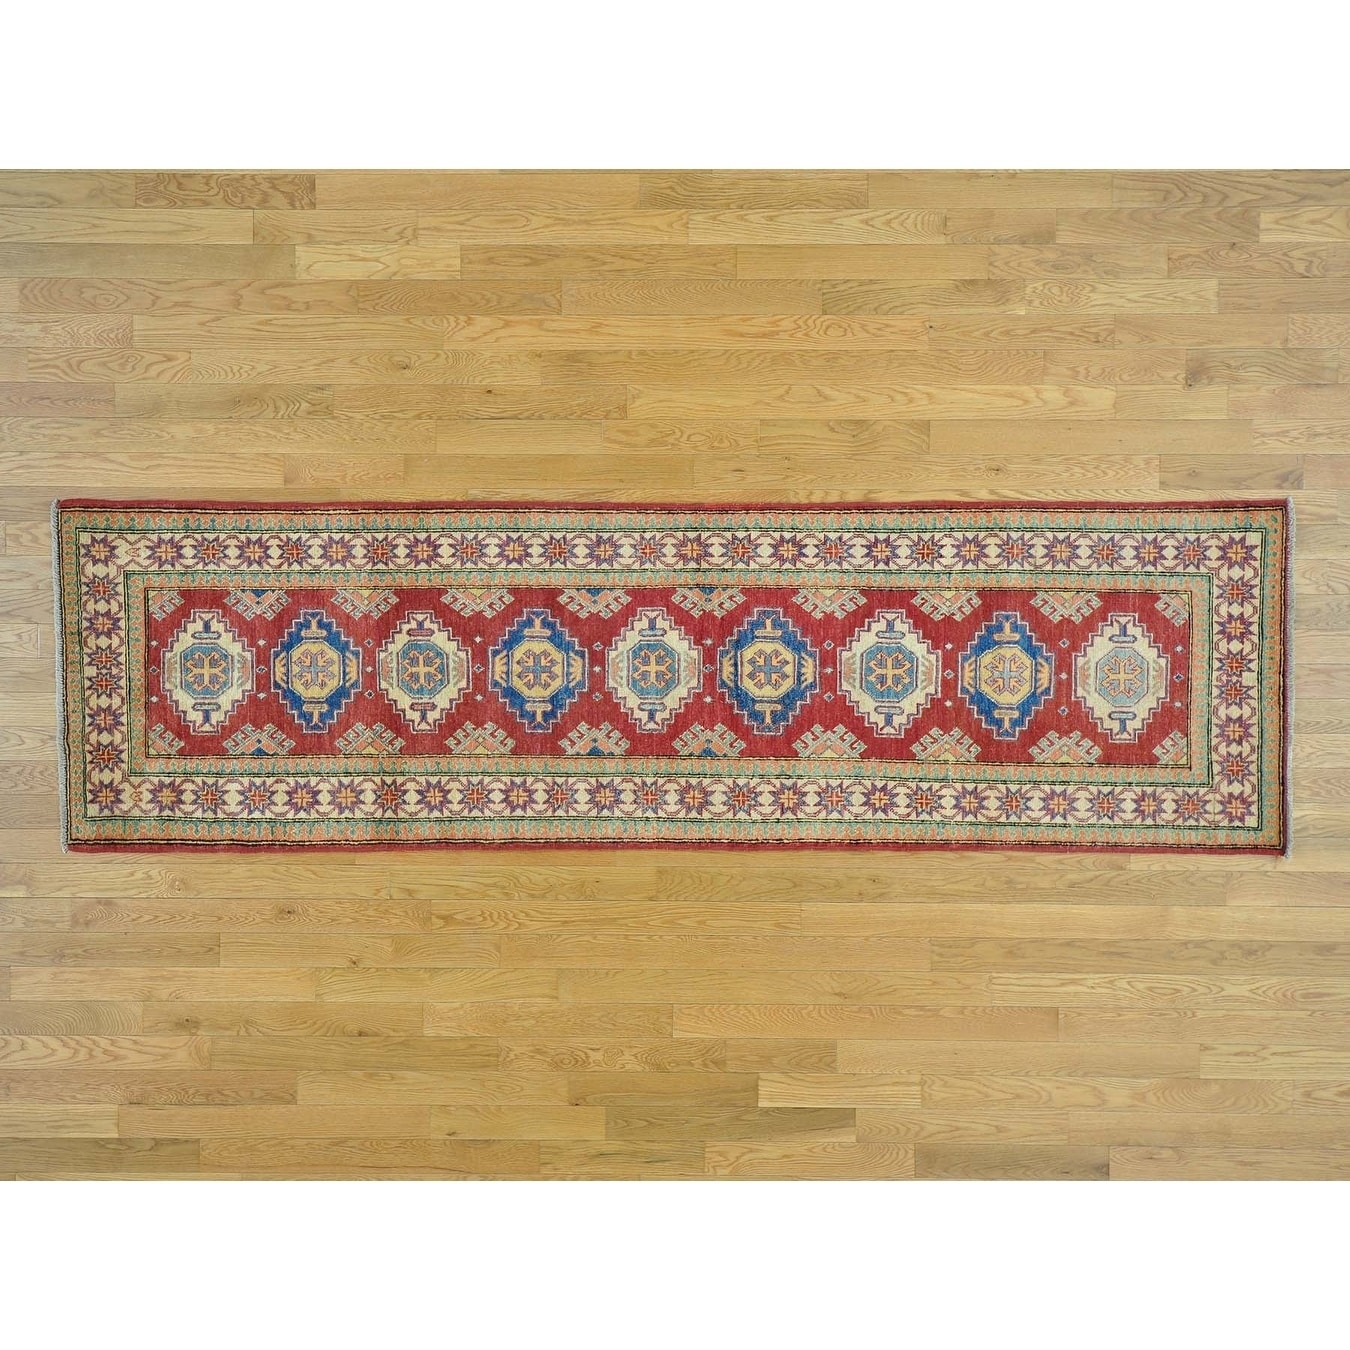 Hand Knotted Red Kazak with Wool Oriental Rug - 28 x 97